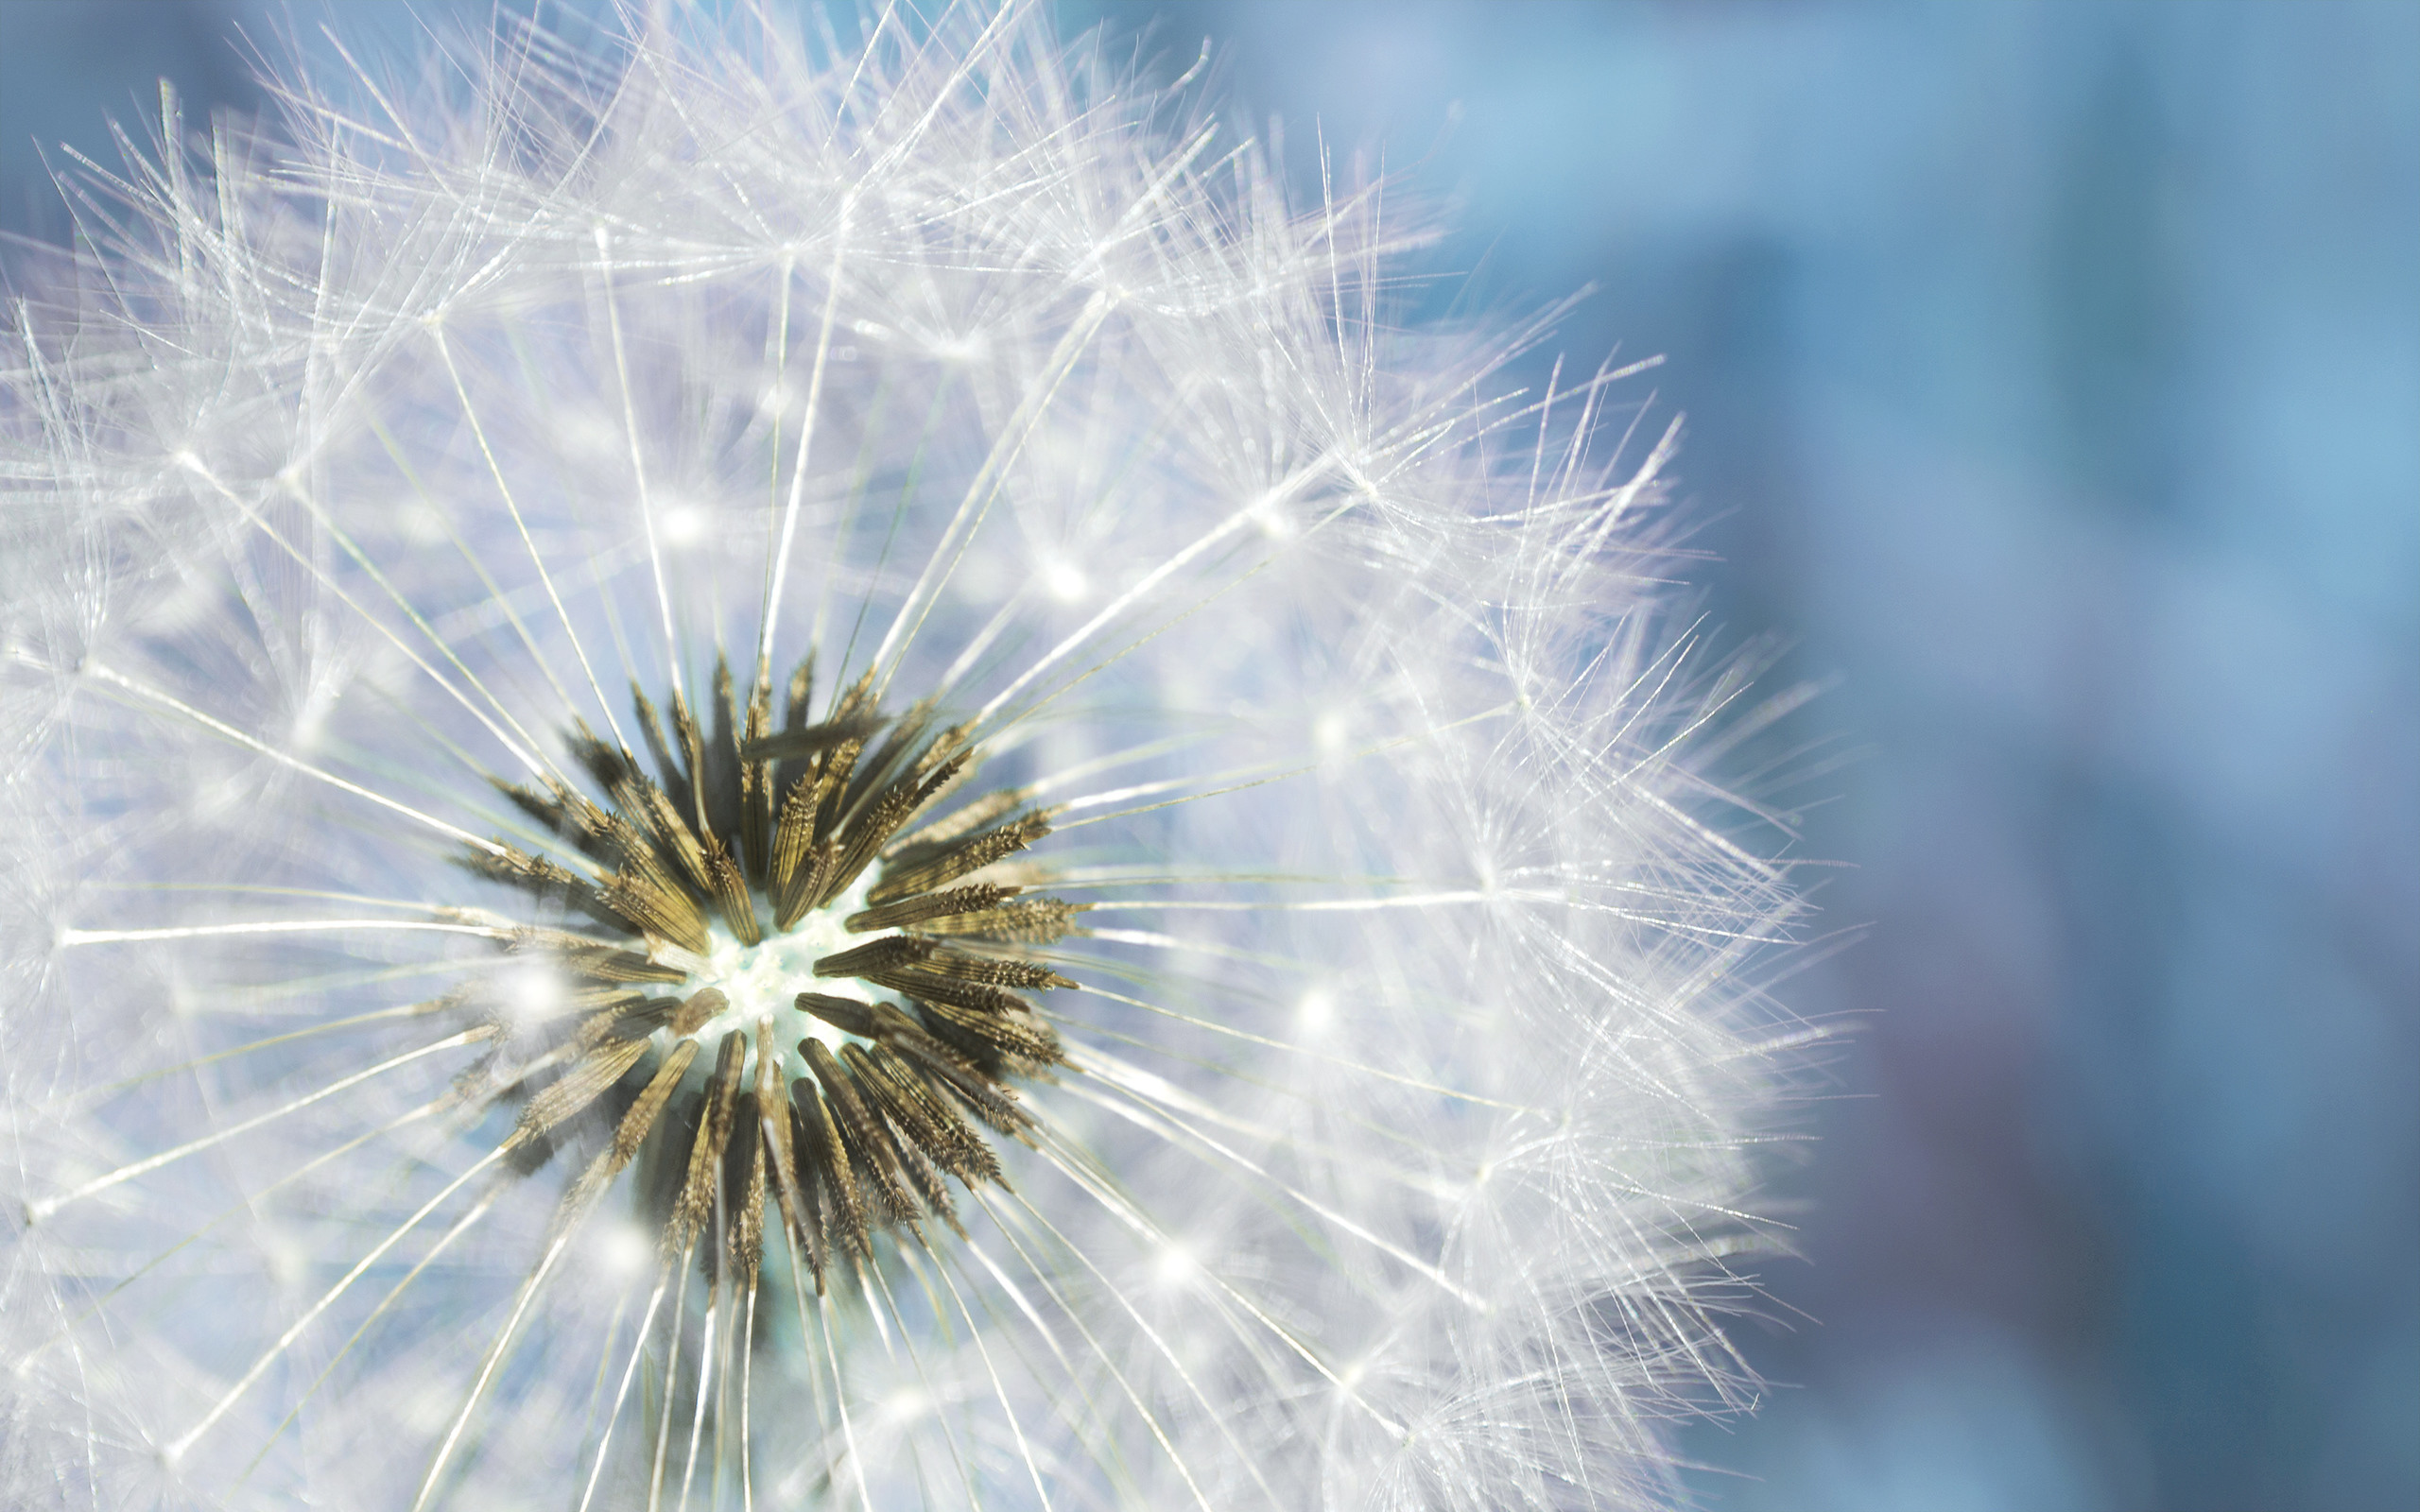 … HD Wallpaper Dandelion …